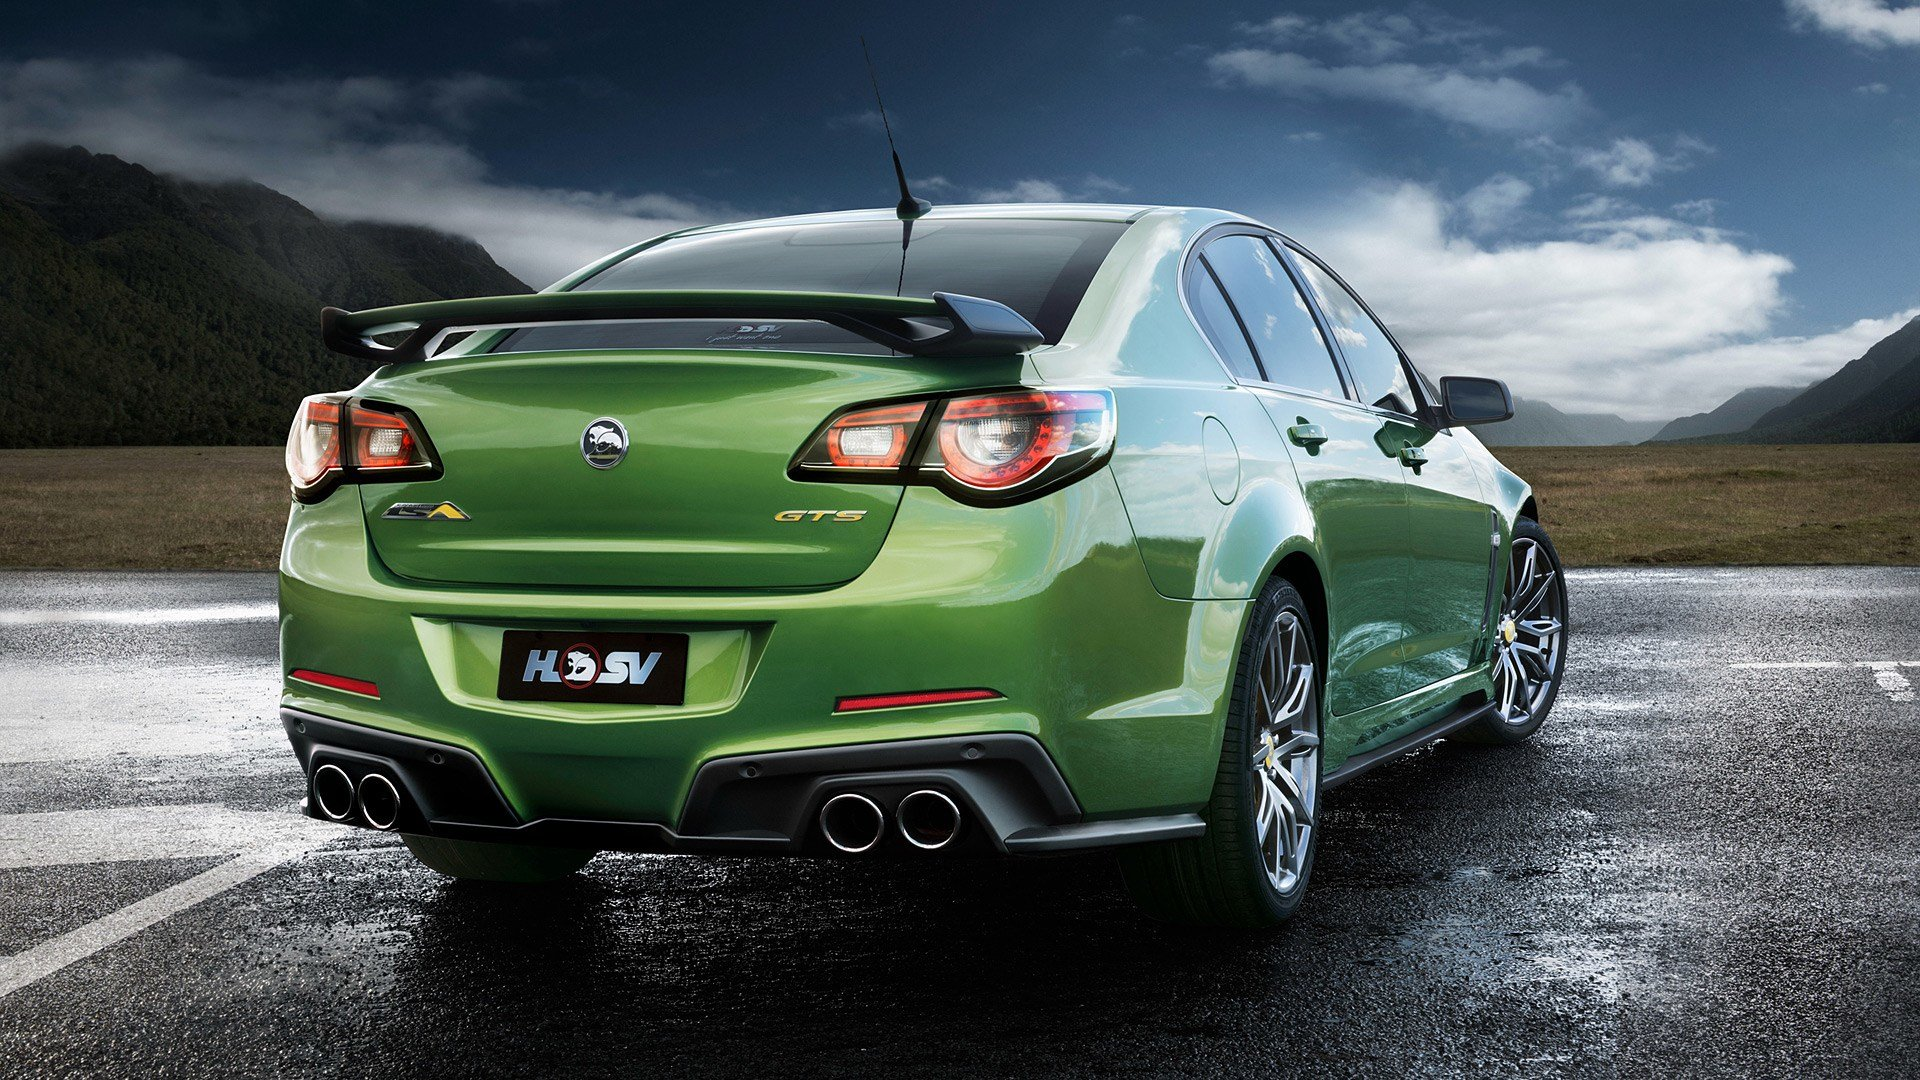 New 2016 Holden Hsv Gen F2 Wallpapers Hd Images Wsupercars On This Month